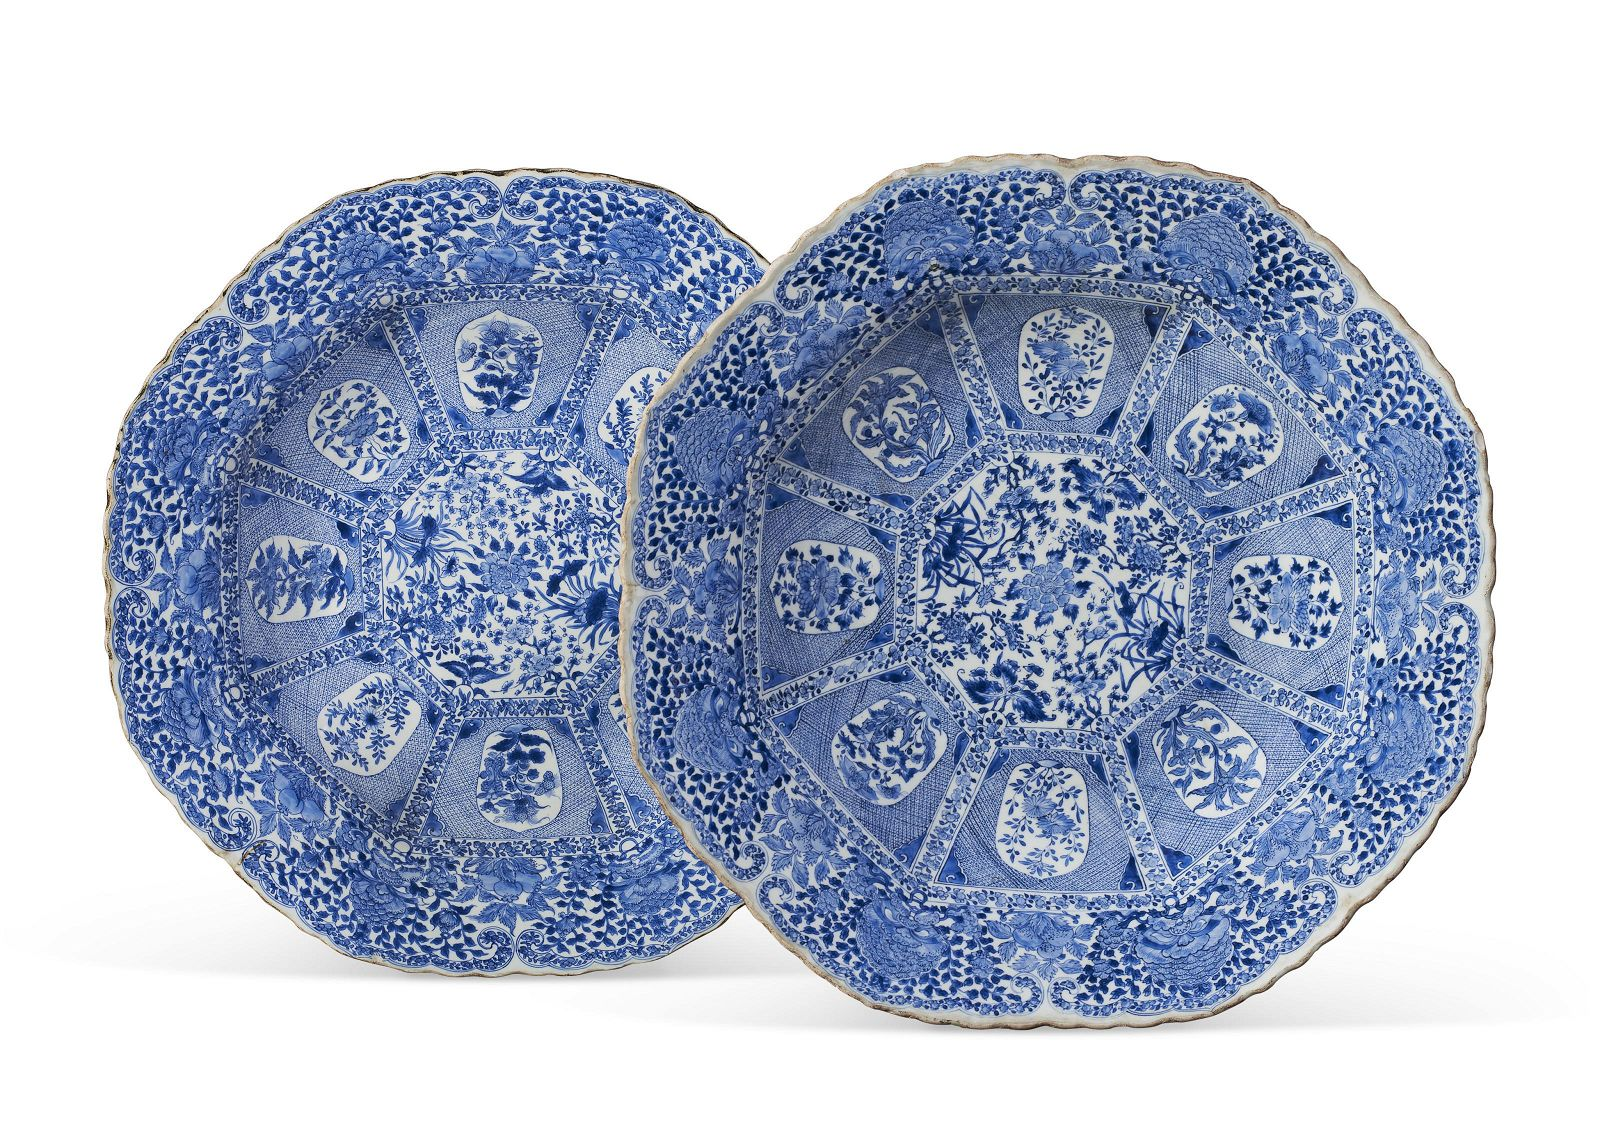 A LARGE PAIR OF CHINESE EXPORT BLUE AND WHITE DISHES